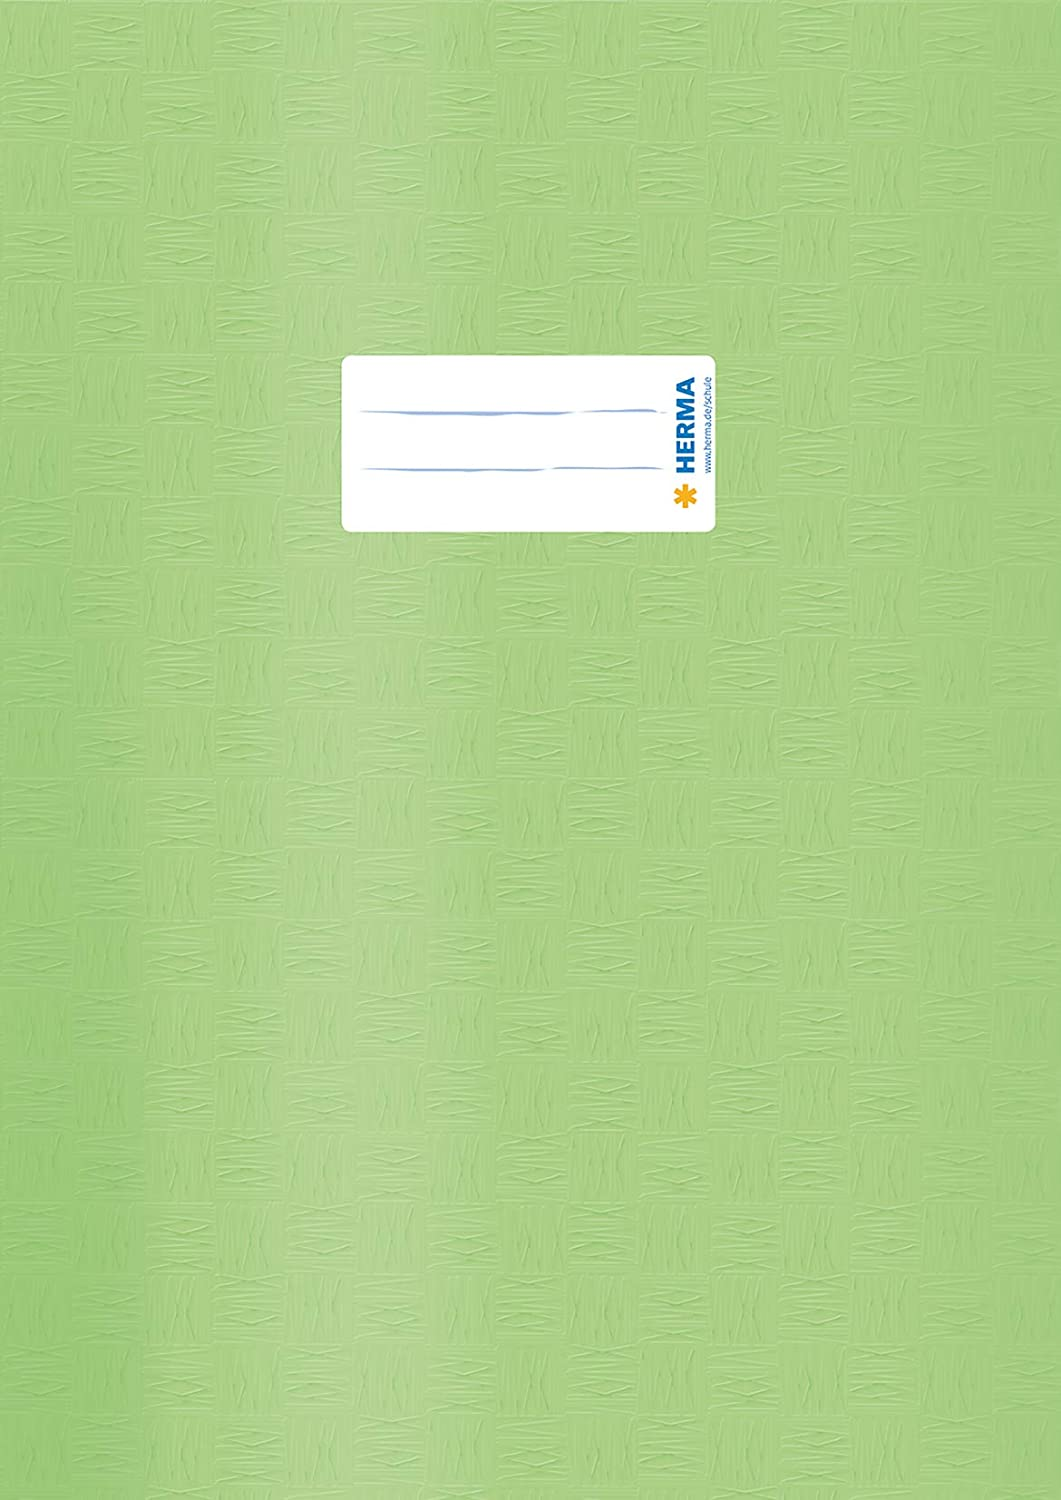 Herma Exercise Book Cover Plastic DIN A4,/Covered with Raffia Pack of 1 Light Green